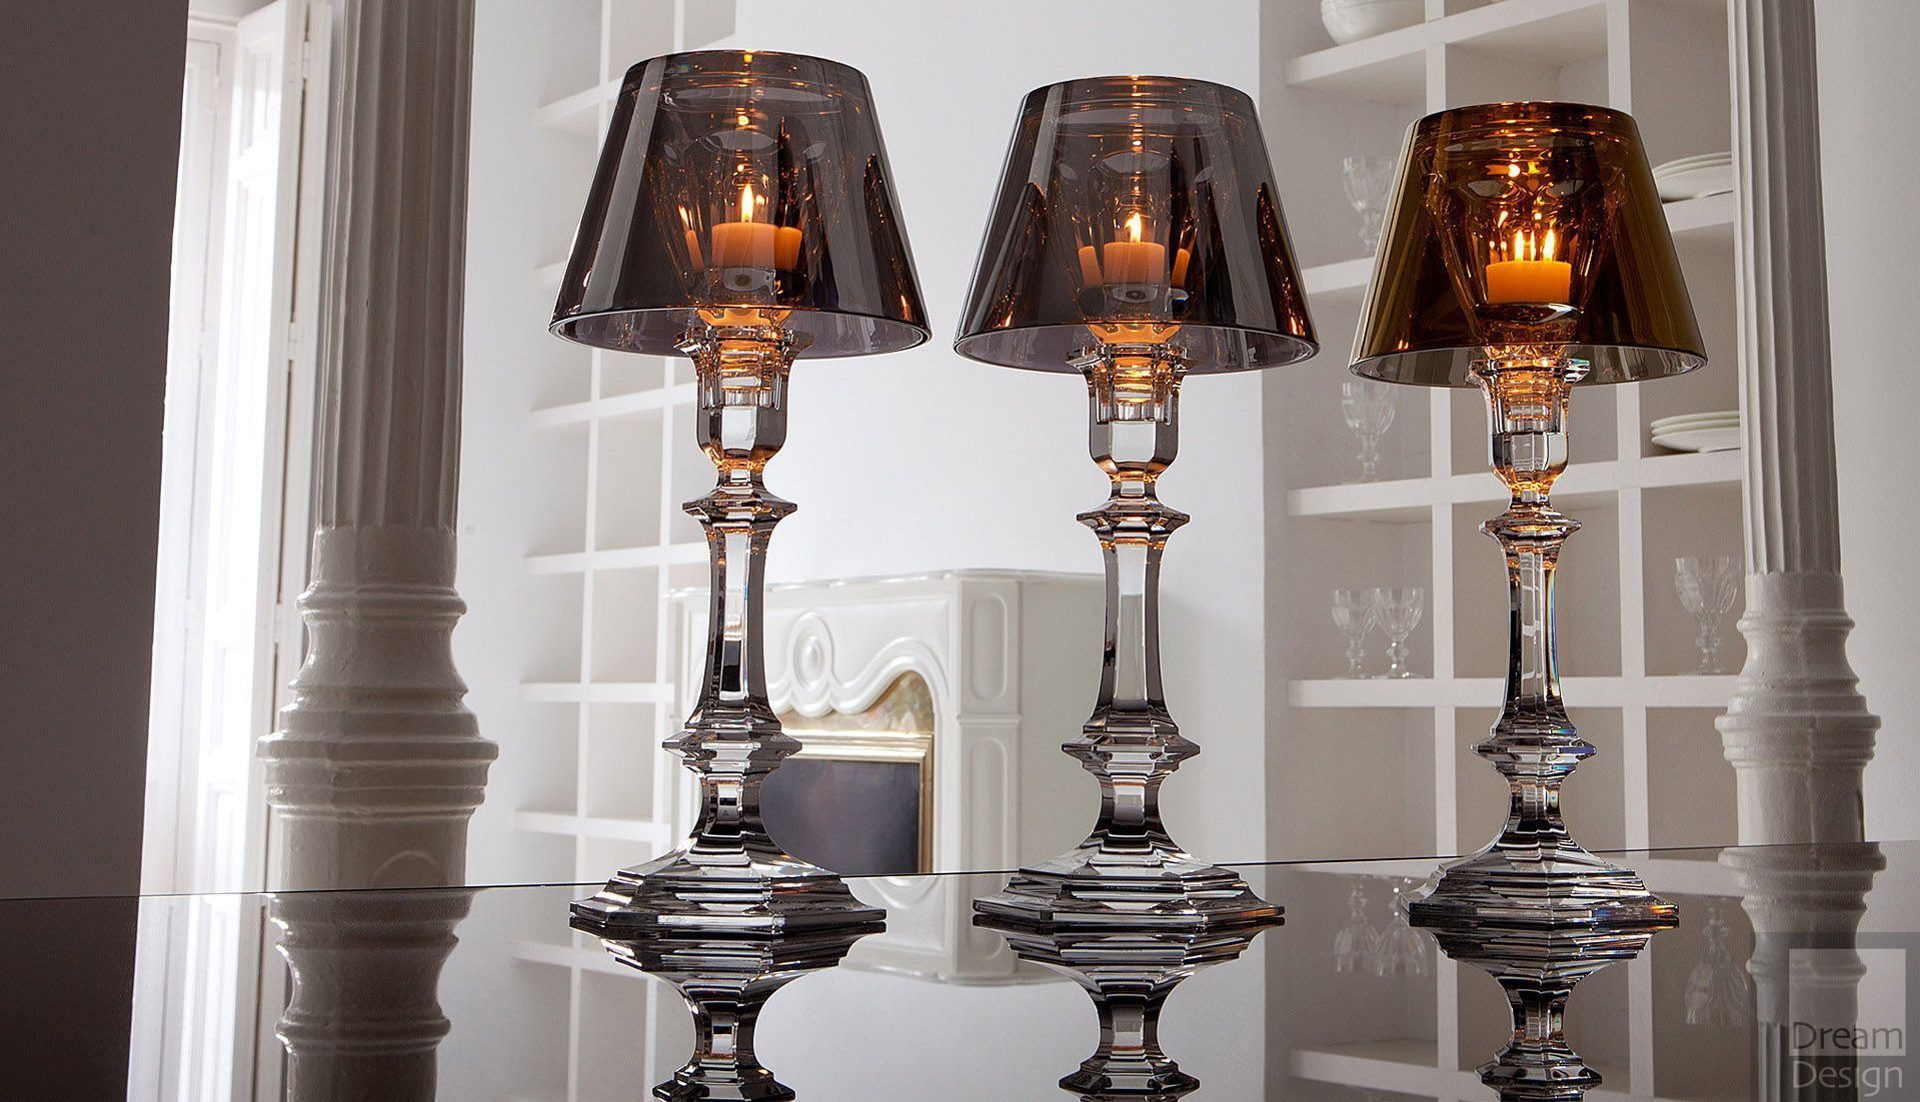 Baccarat Ourfire Candlestick